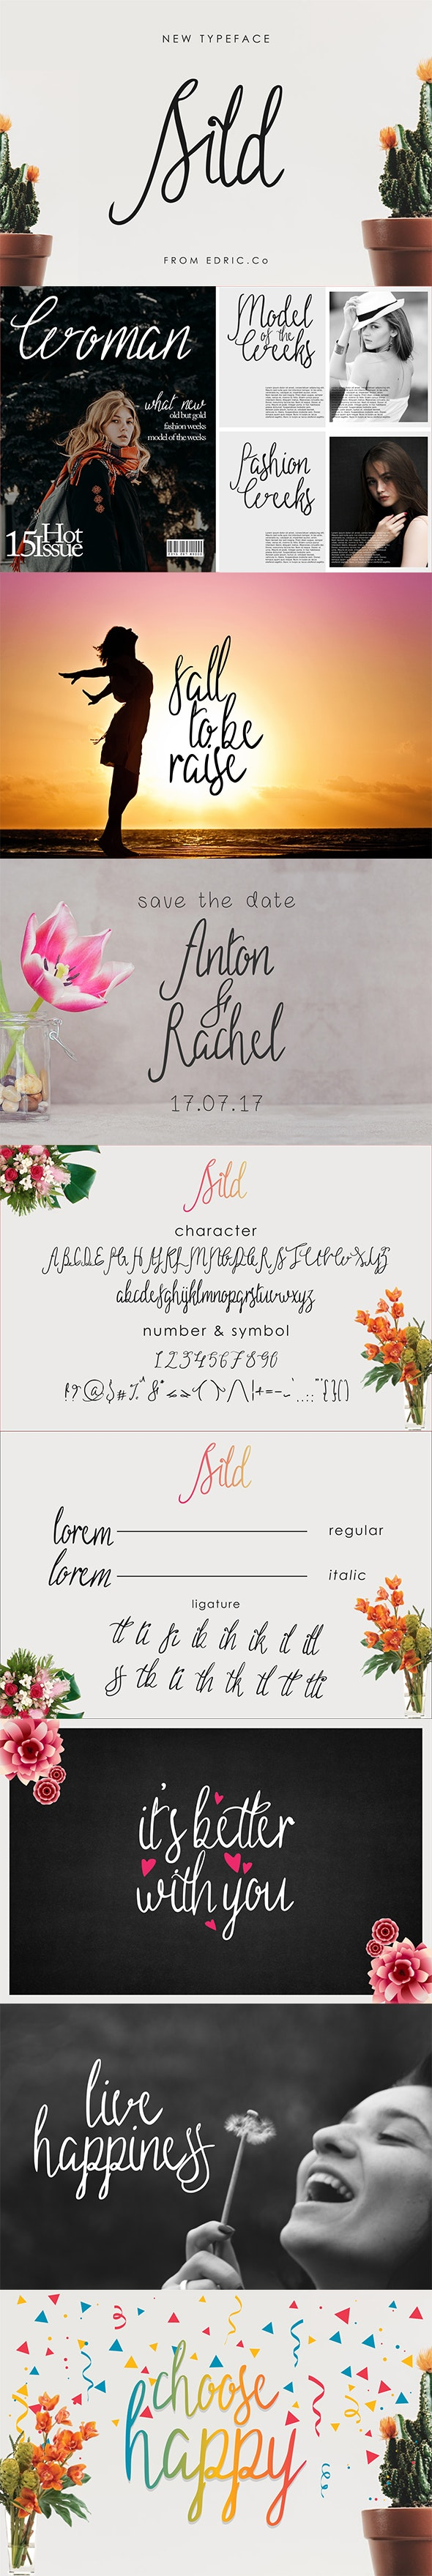 Sild Beauty Font - Modern Handwriting Feminism Signature - Hand-writing Script